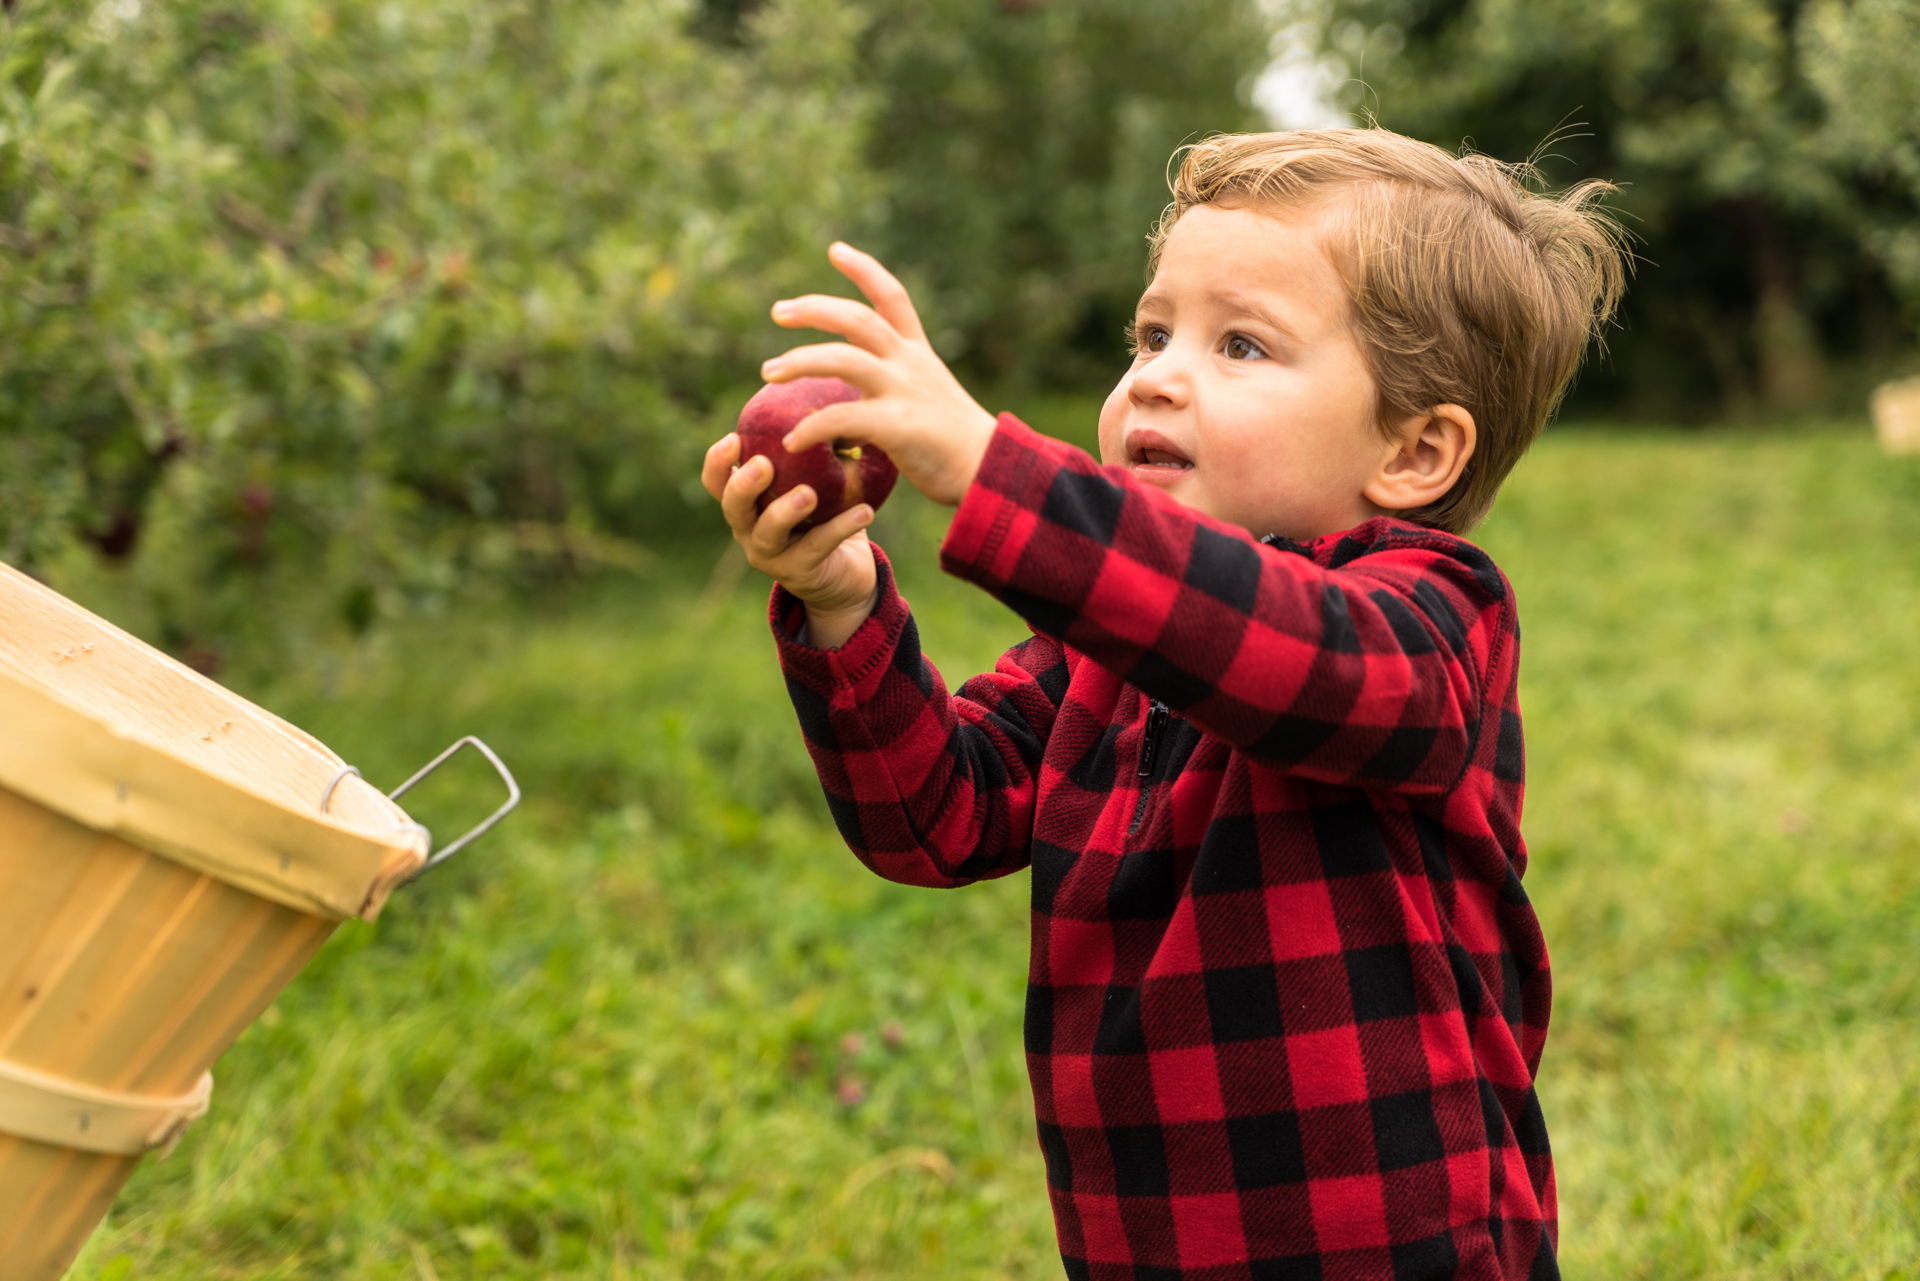 Jenny's cousin's son partaking in apple picking